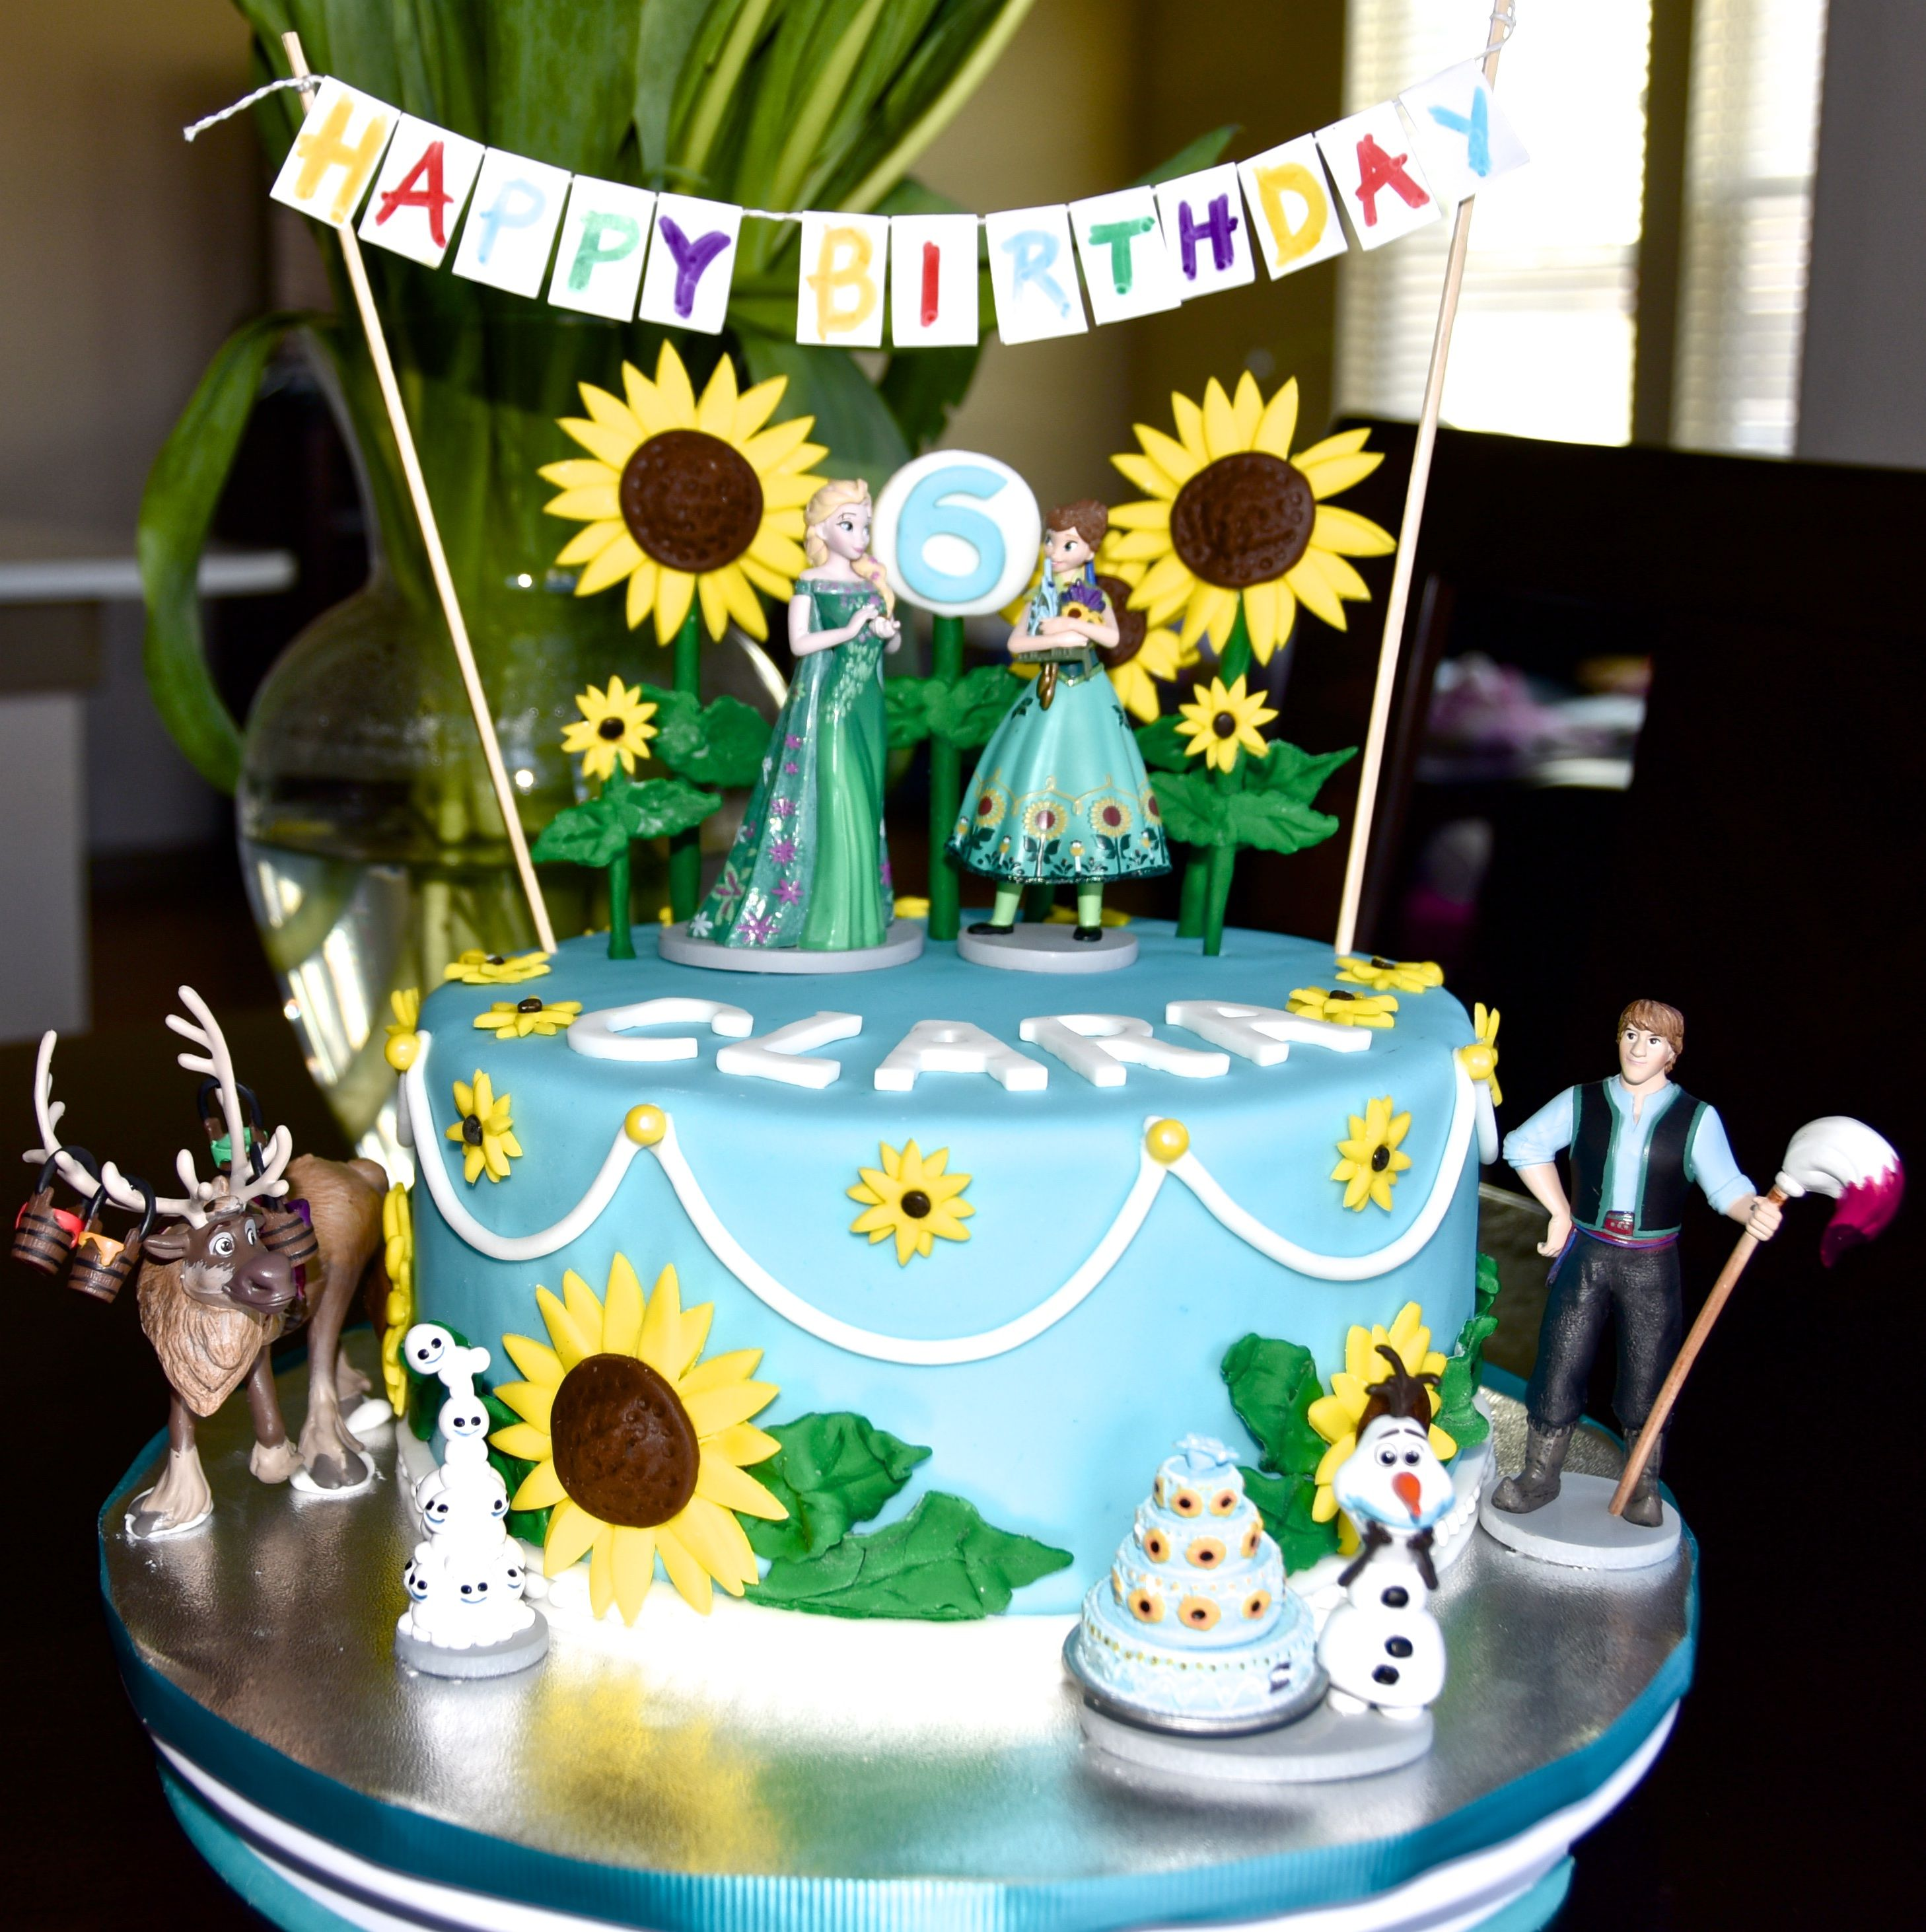 Frozen Fever Cake With Disney Figurines Sunflowers And Banner